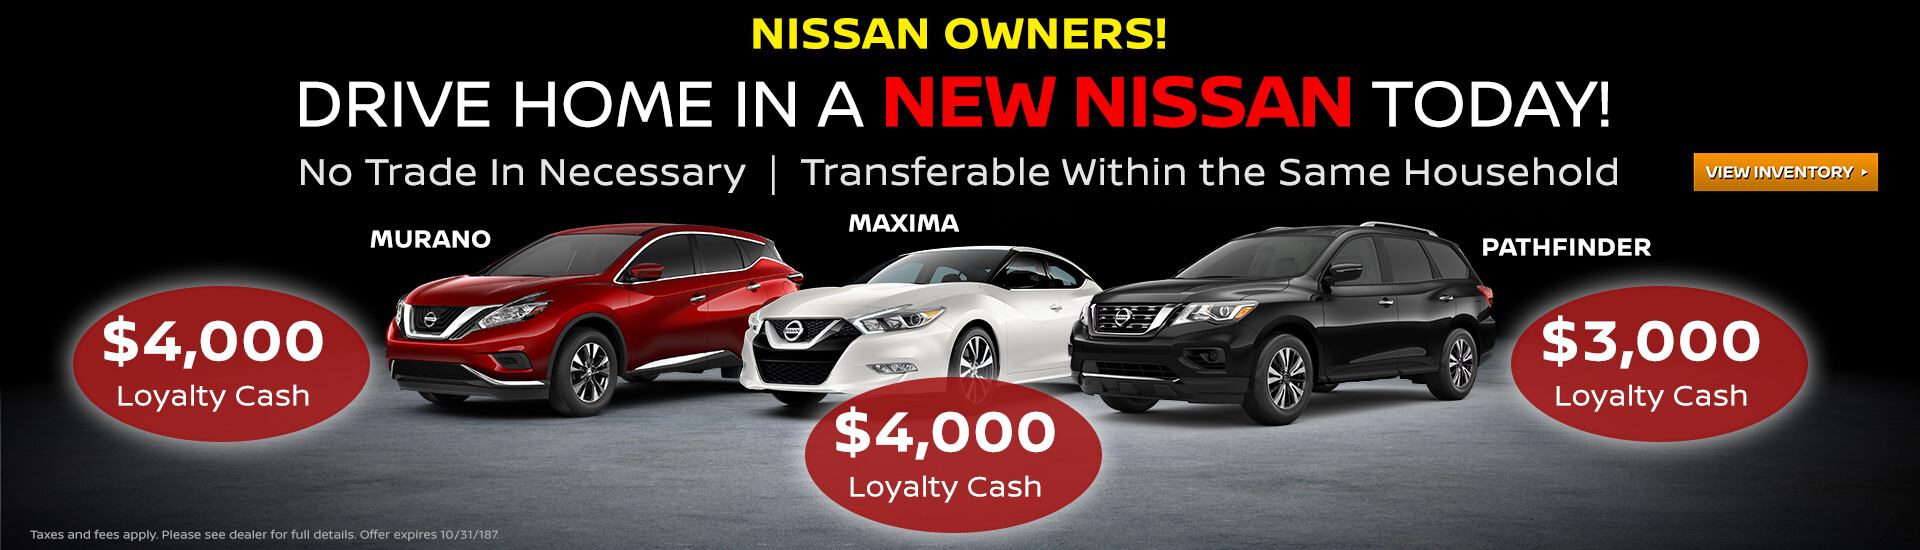 Lease Loyalty